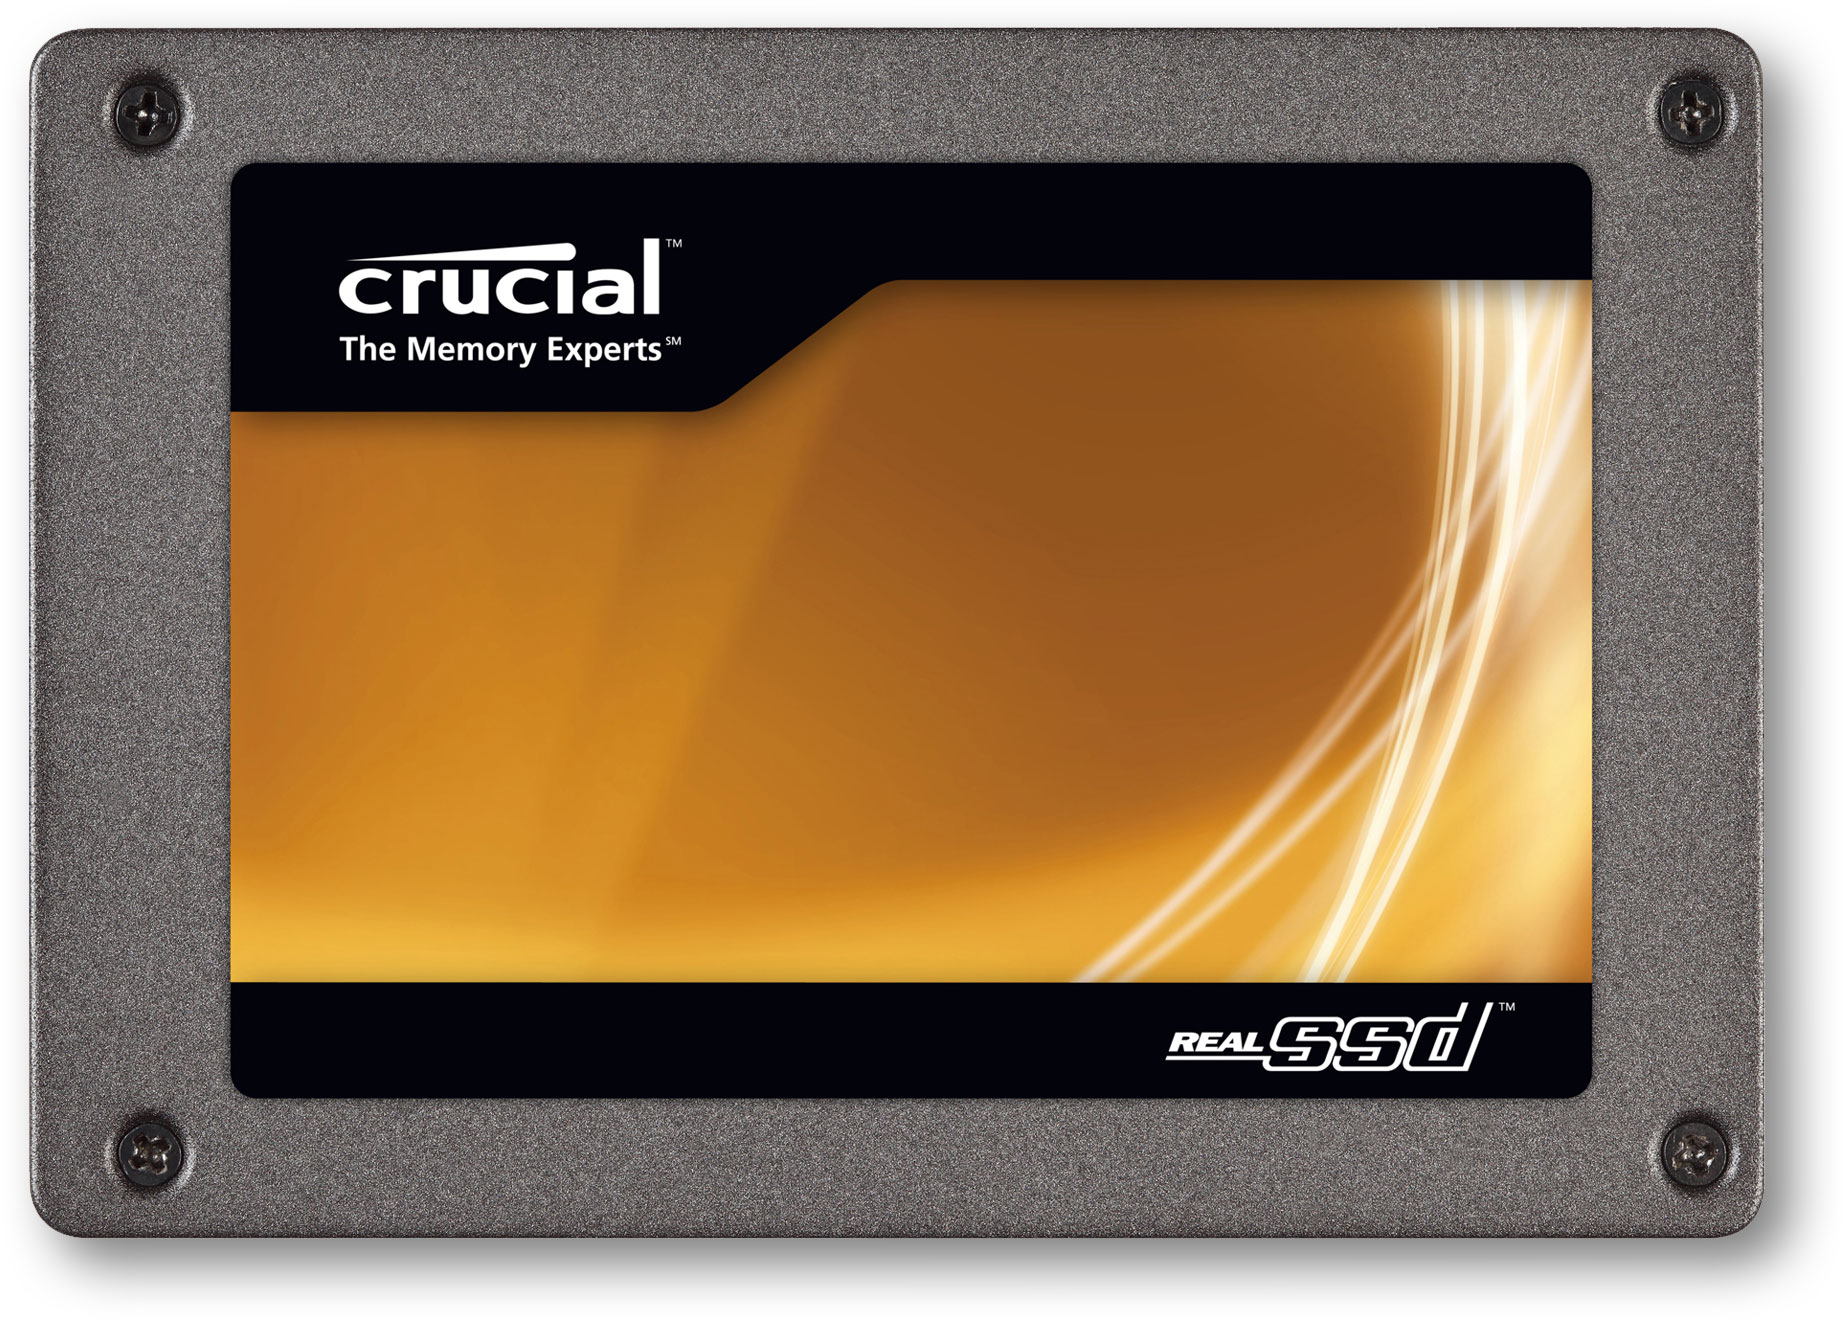 Ssd Wd Green 120gb Sata M2 6gb S Portugal Crucial Realssd C300 25 Inch Top Image